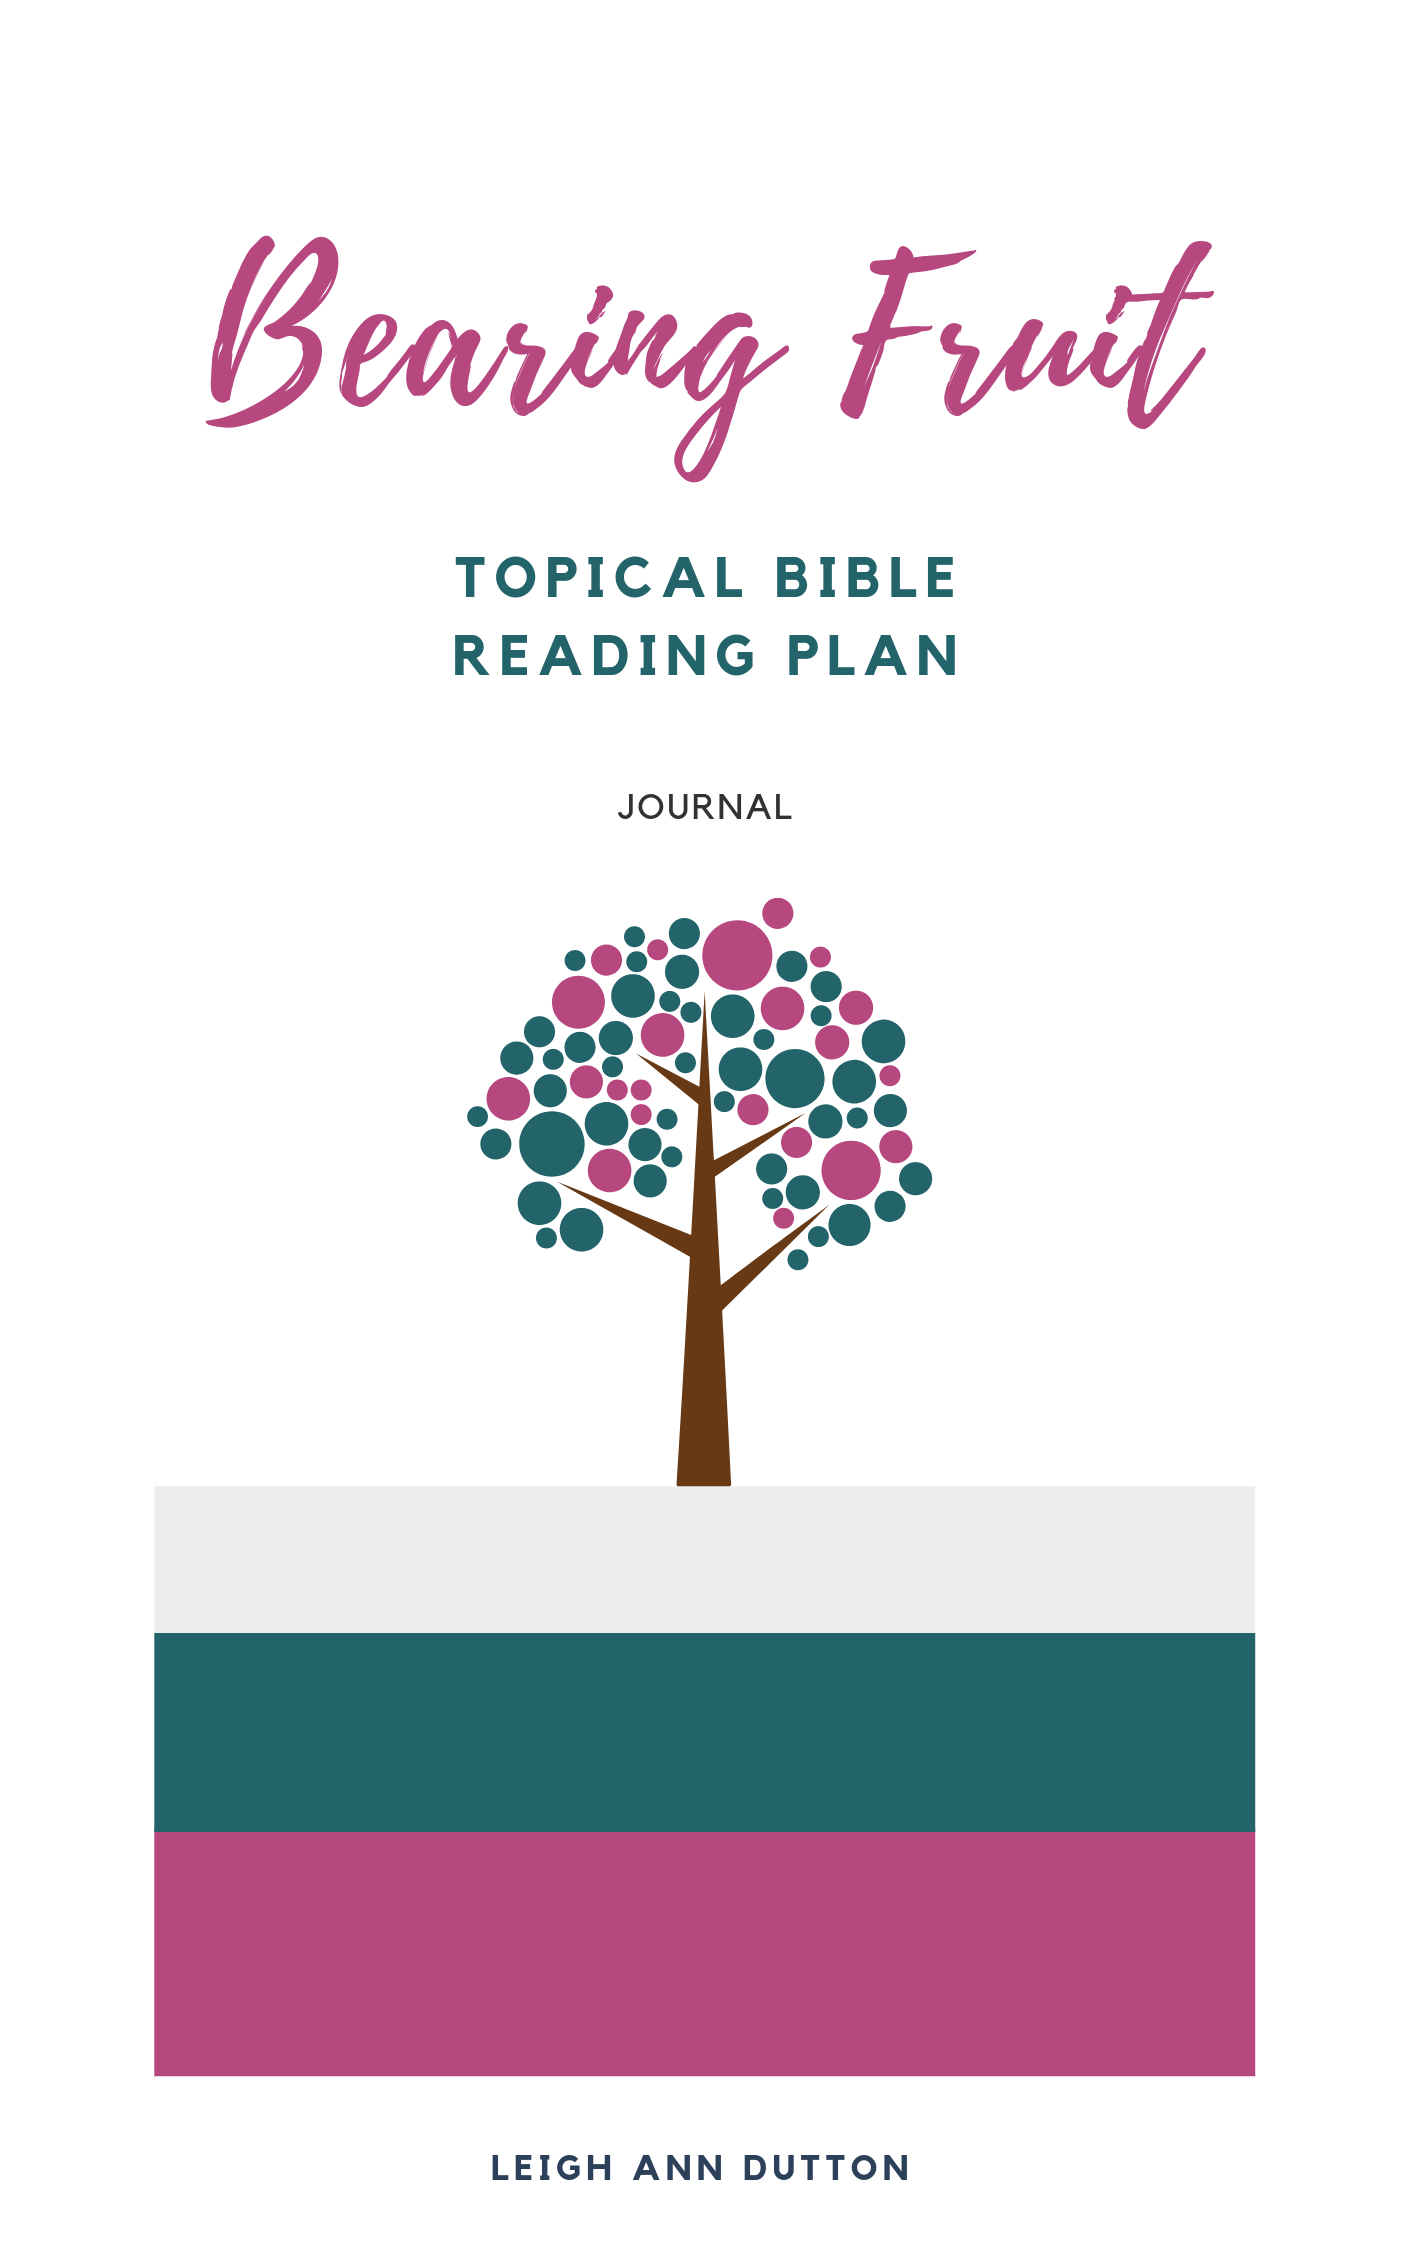 Free Bible Reading Plan on Bearing Fruit. You were made to give life. | IntentionalByGrace.com